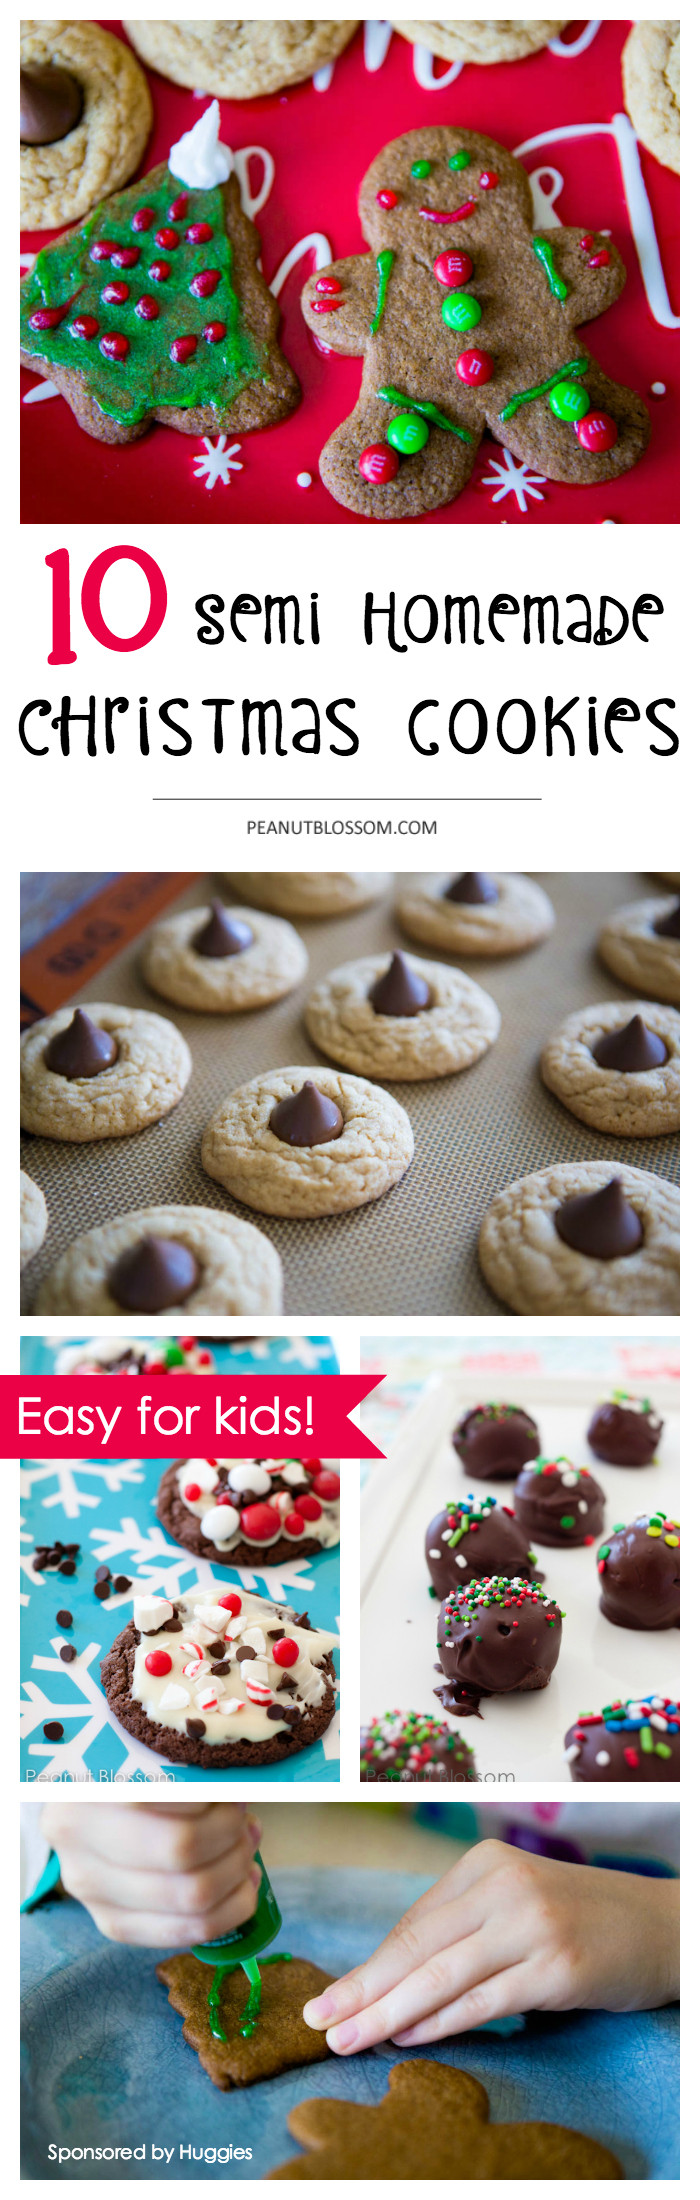 Easy Christmas Cookies For Kids  10 semi homemade Christmas cookies that will save your sanity